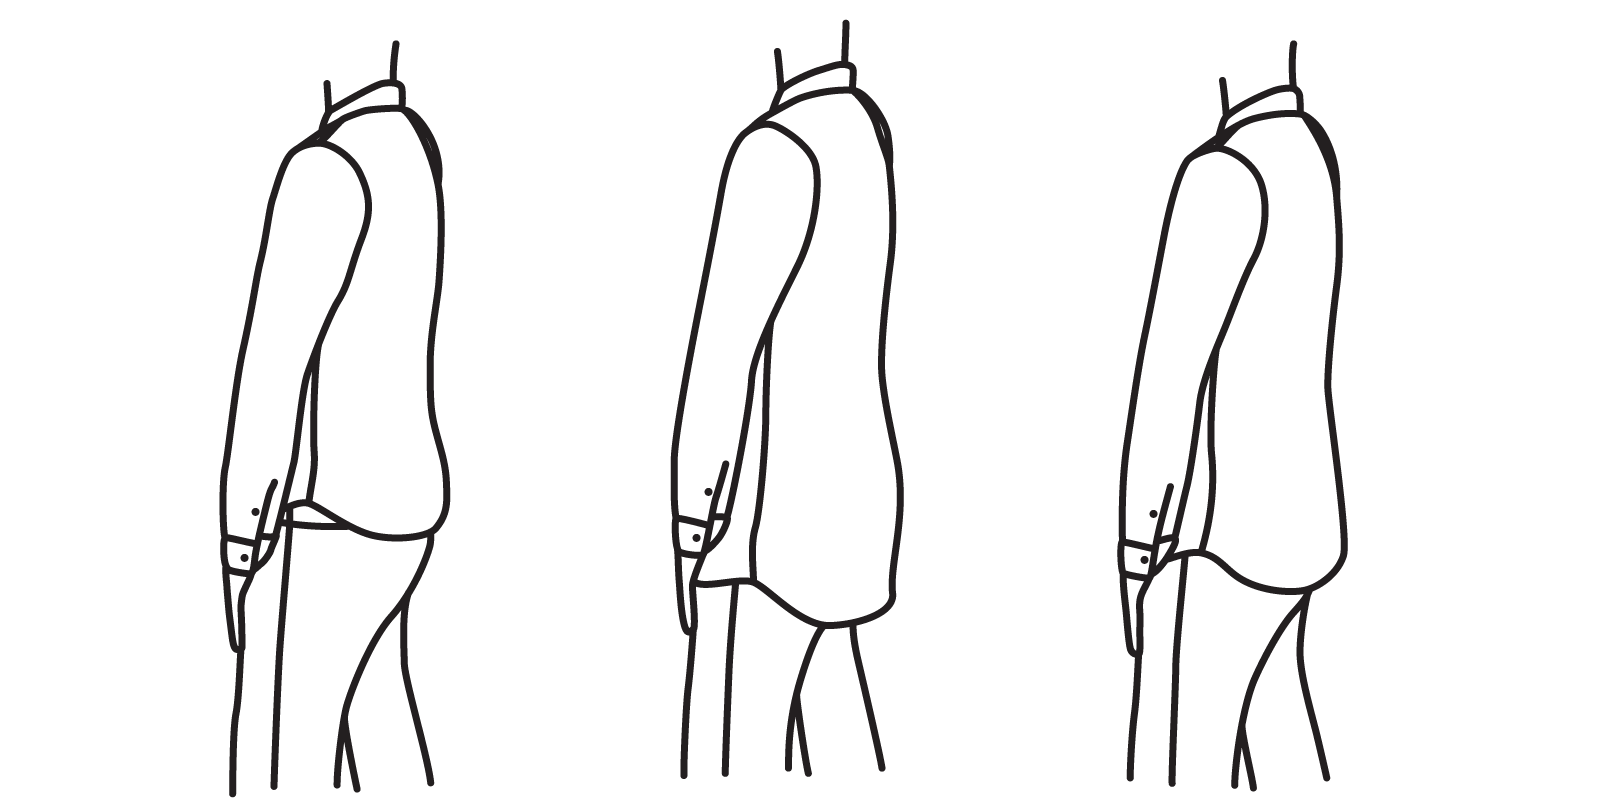 A shirt meant to be tucked in shouldn't be so short that it does not cover the seat (left), but it should not be so long that it extends well below it (center). It should just cover the seat (right).